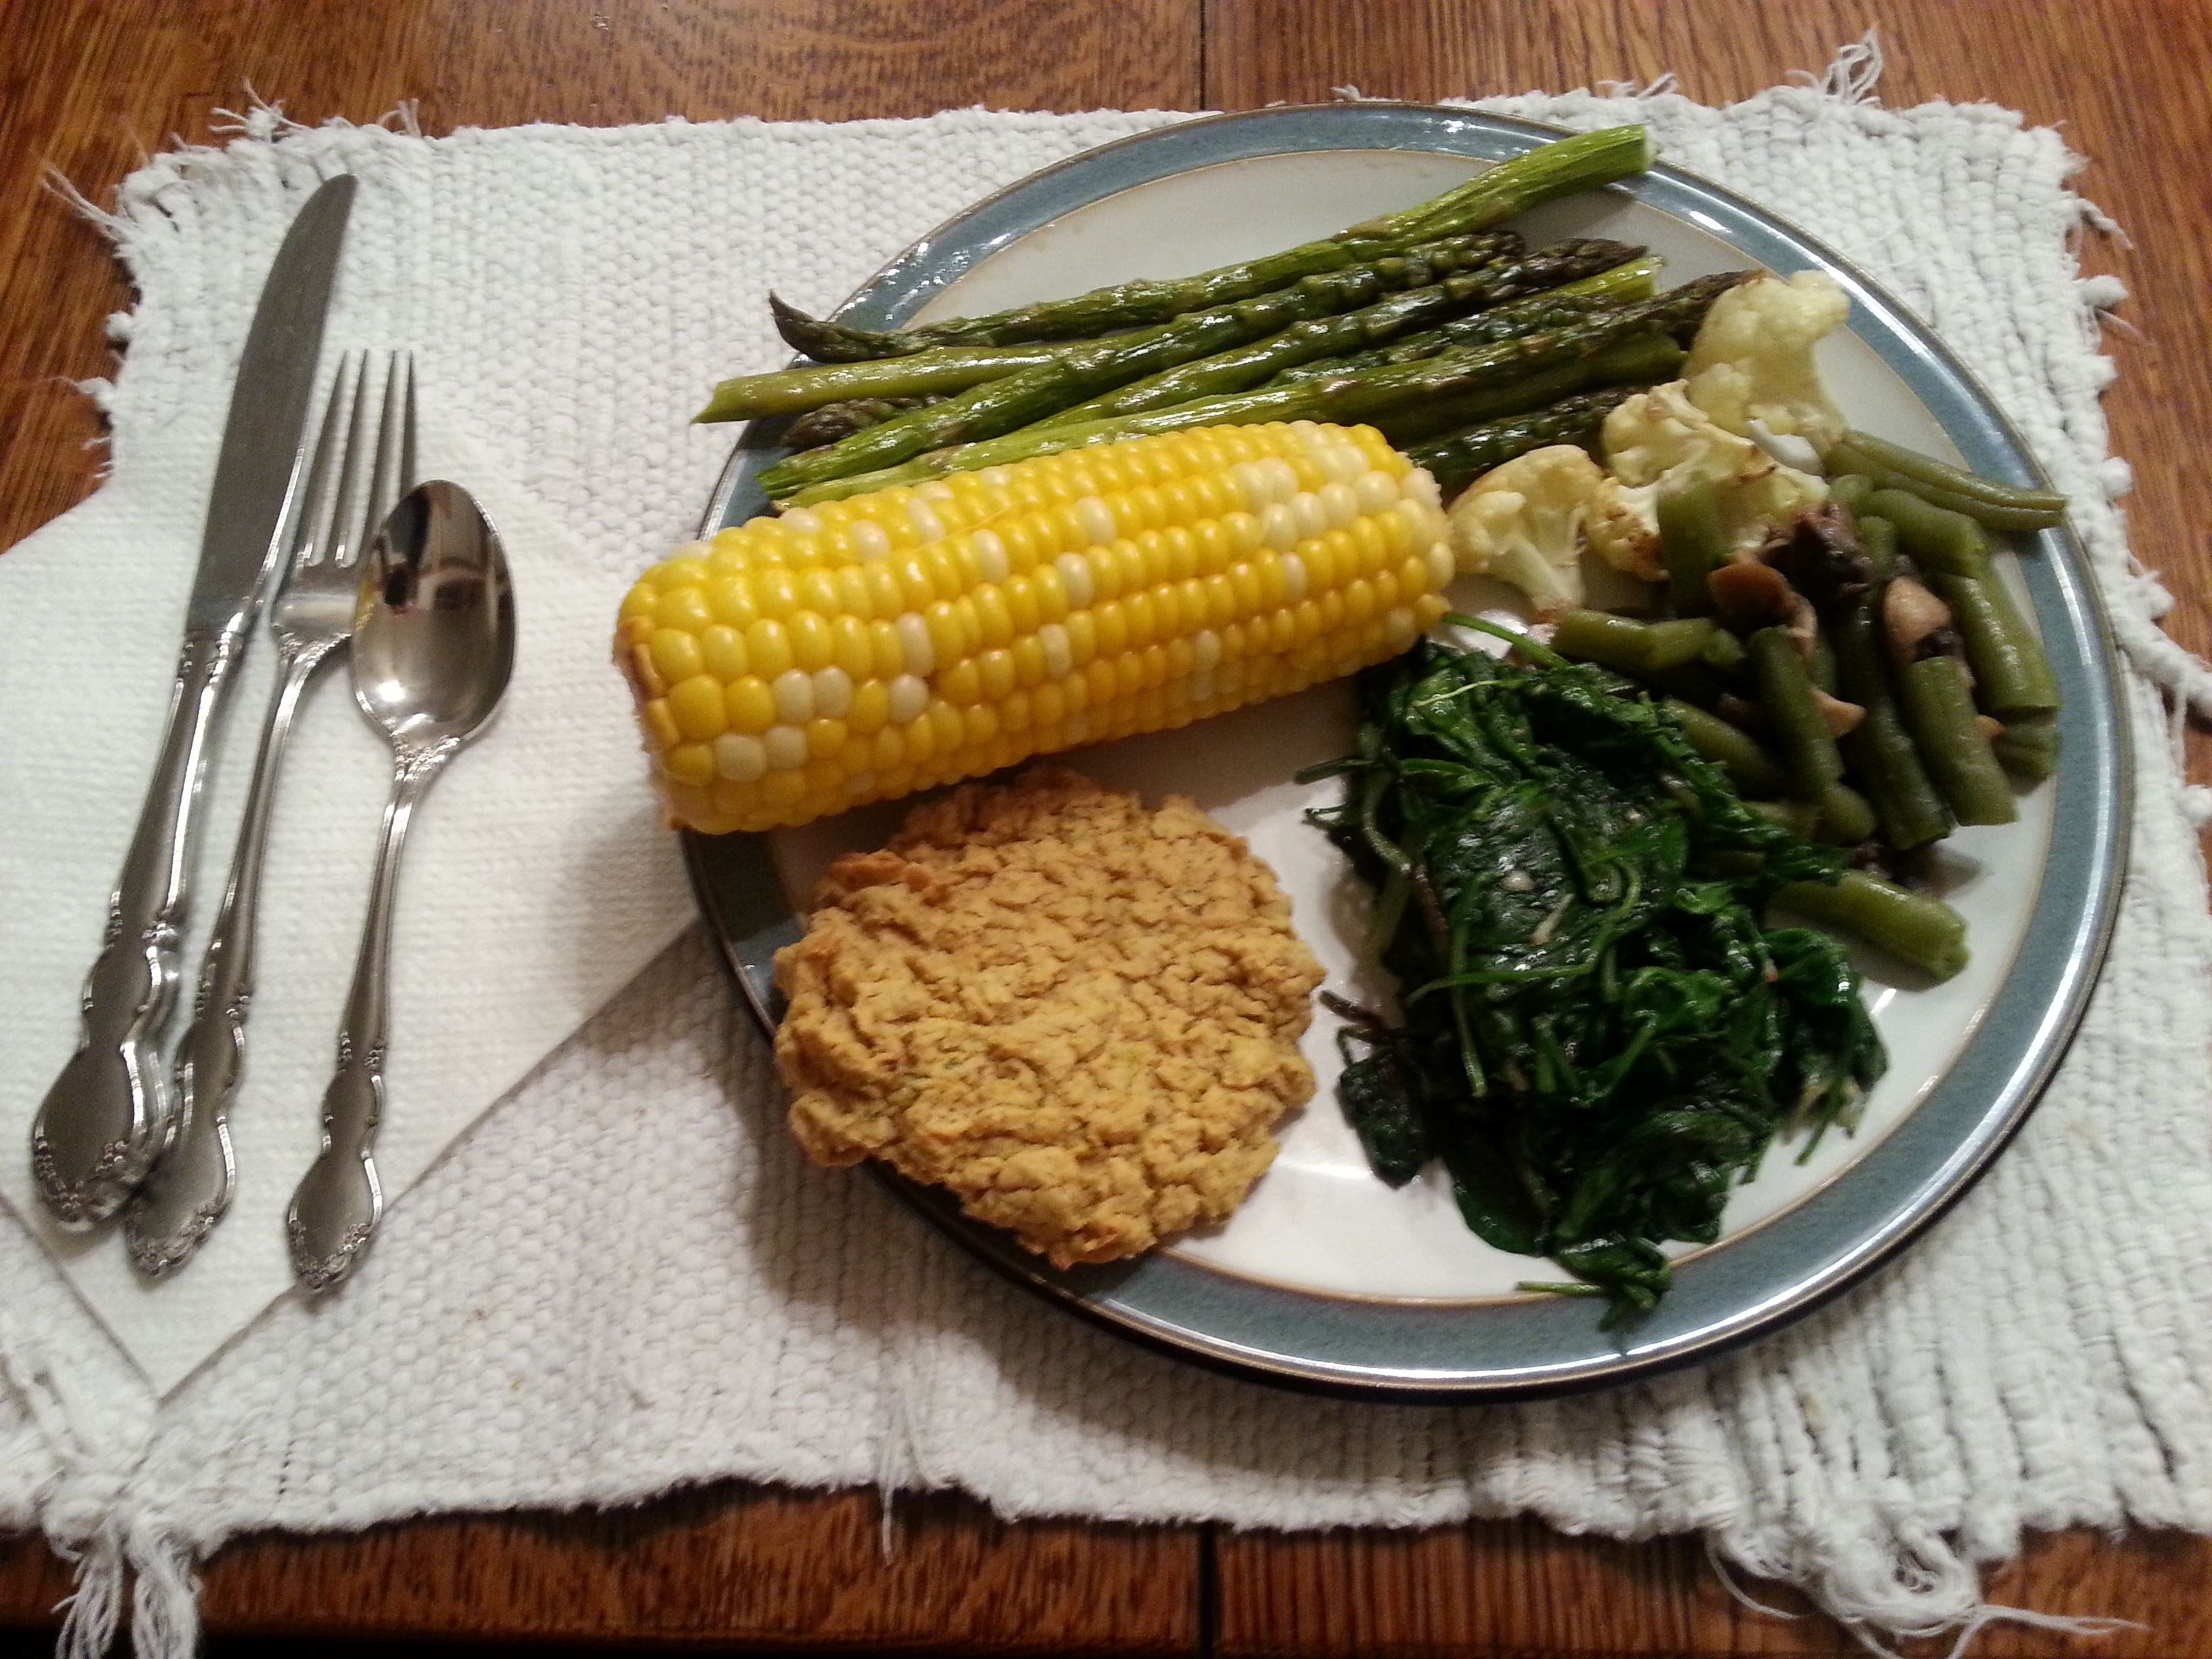 TQI Meatless Dinner: chickpea patty, corn on the cob, greens, green beans with mushrooms, roasted cauliflower, asparagus.